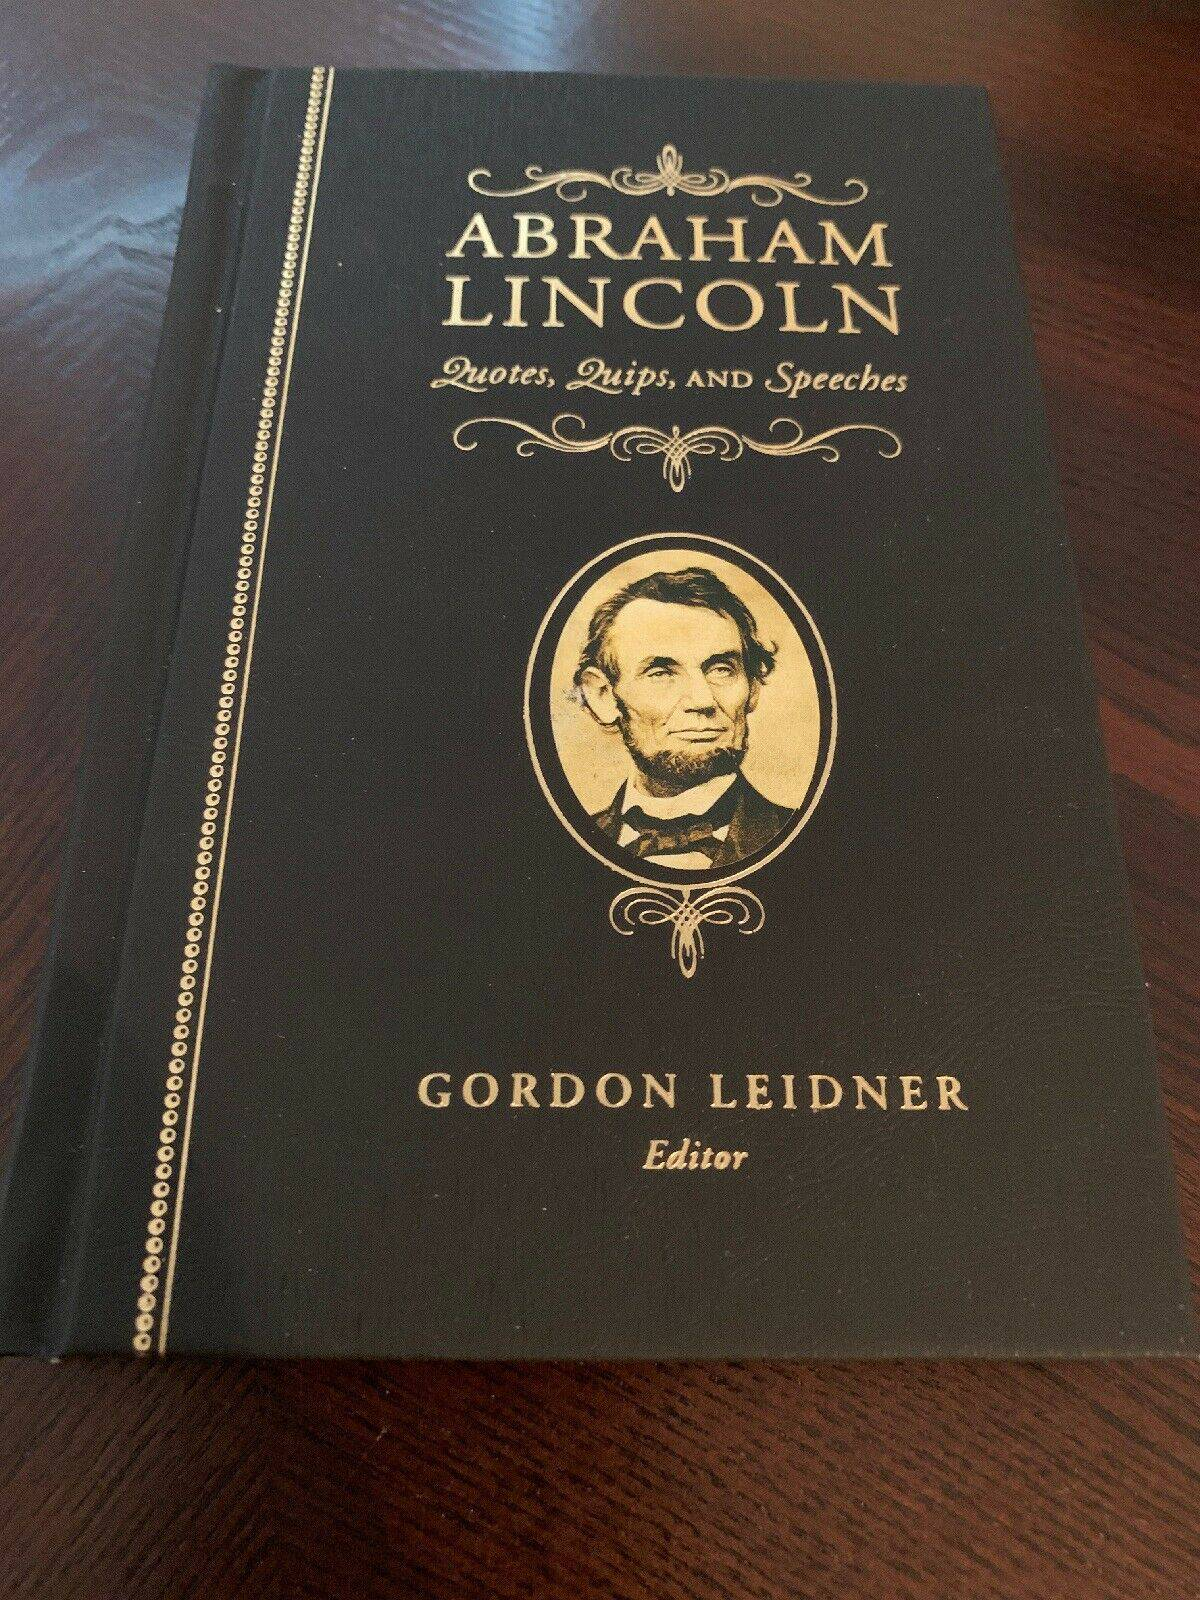 Abraham Lincoln - Quotes, Quips and Speeches Hardcover Book